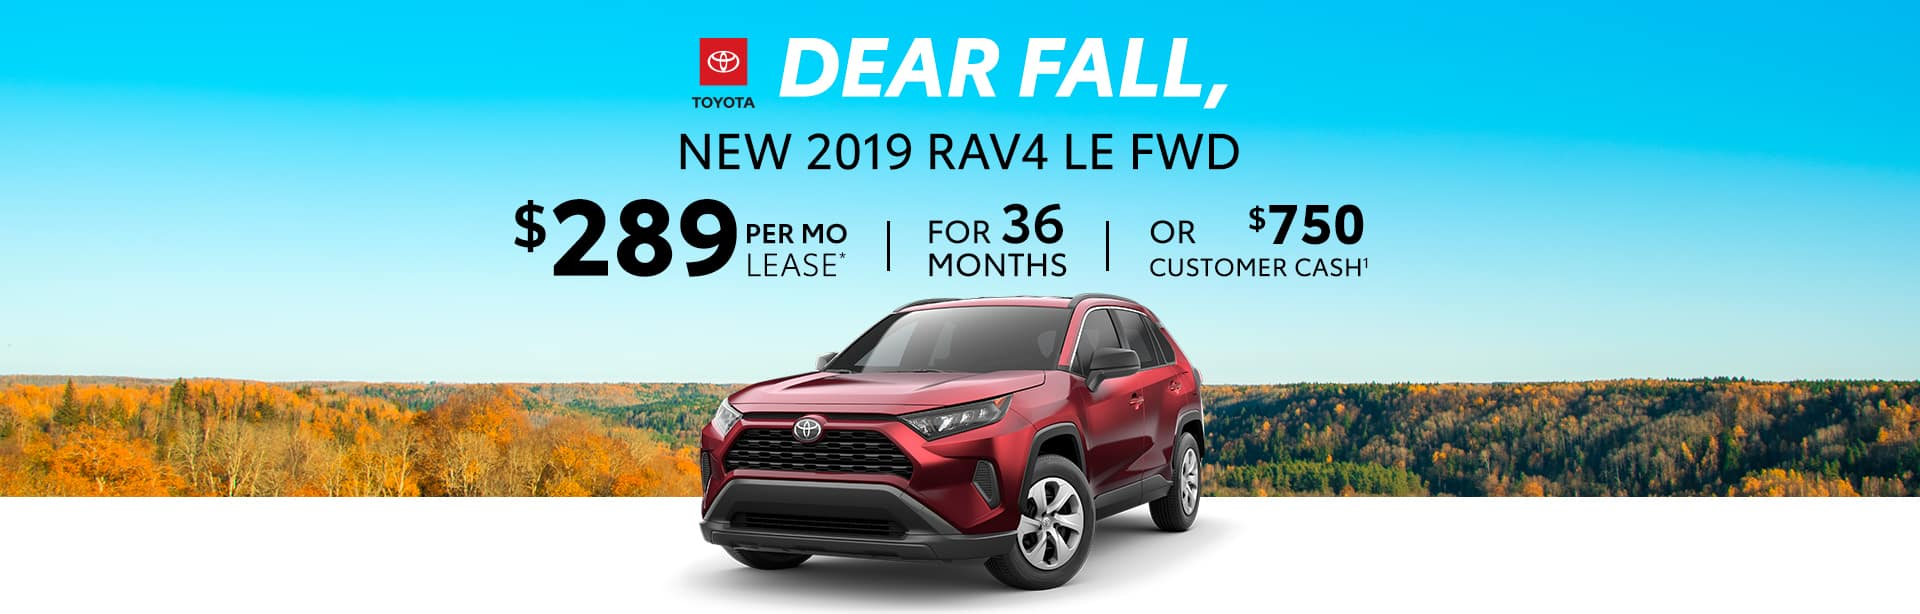 Best Deal on a New RAV4 near Franklin, Indiana.